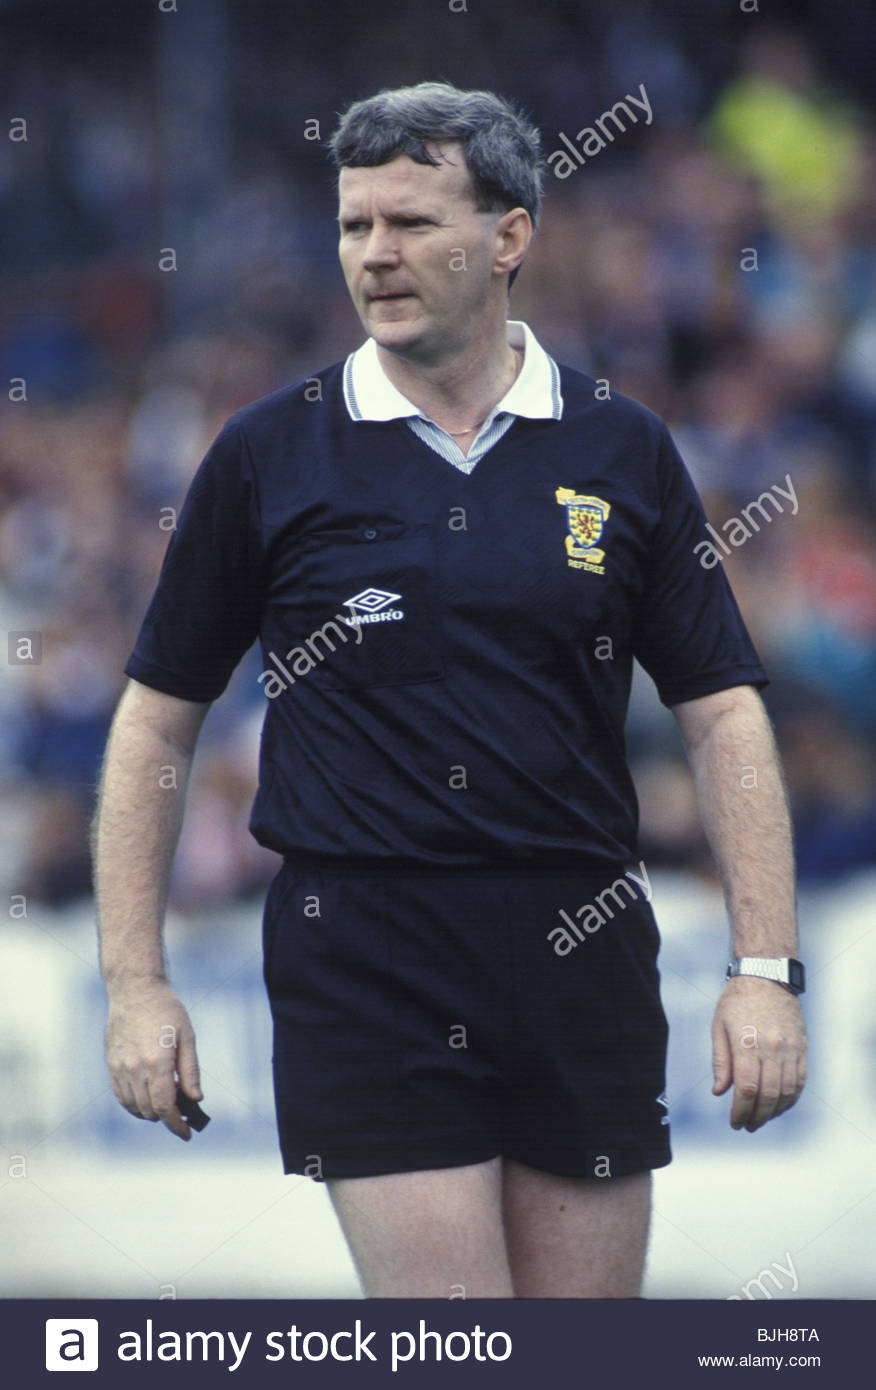 26/09/92 SCOTTISH PREMIER DIVISION AIRDRIE v HEARTS (1-0) BROOMFIELD - AIRDRIE Referee Bill Innes - Stock Image